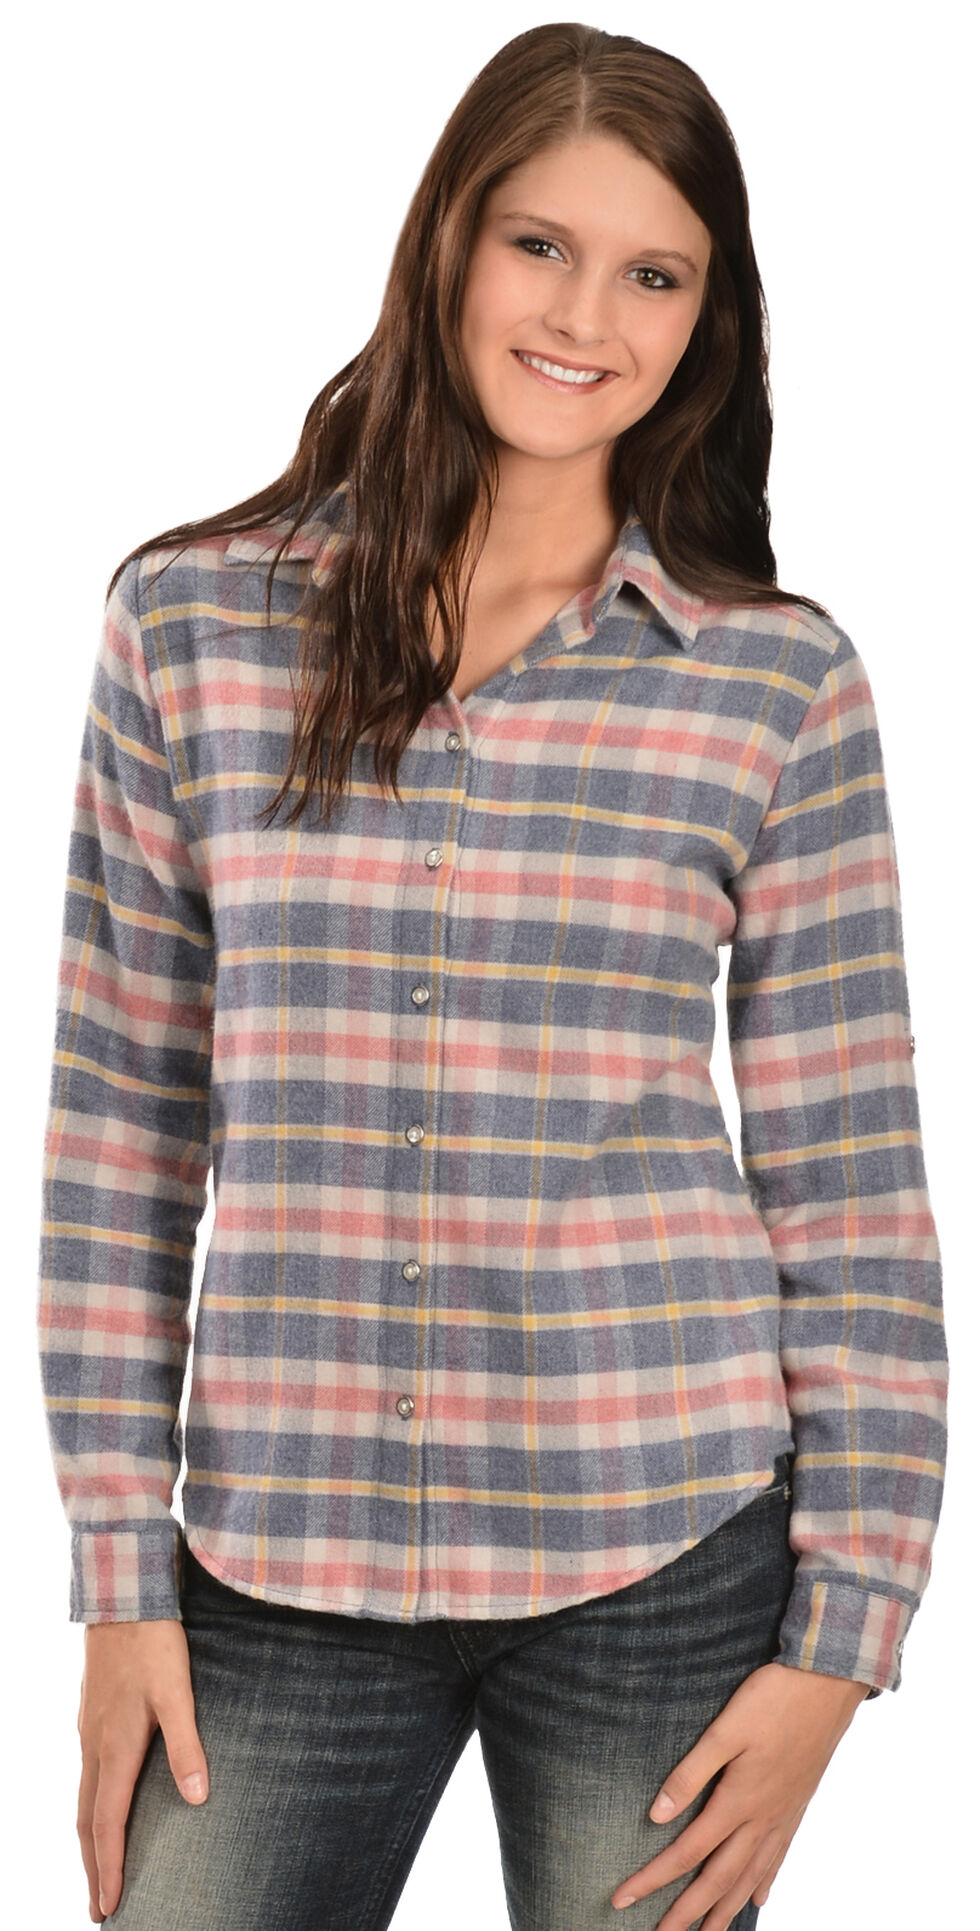 White Crow Women's Harvest Moon Plaid Flannel Shirt, Blue, hi-res